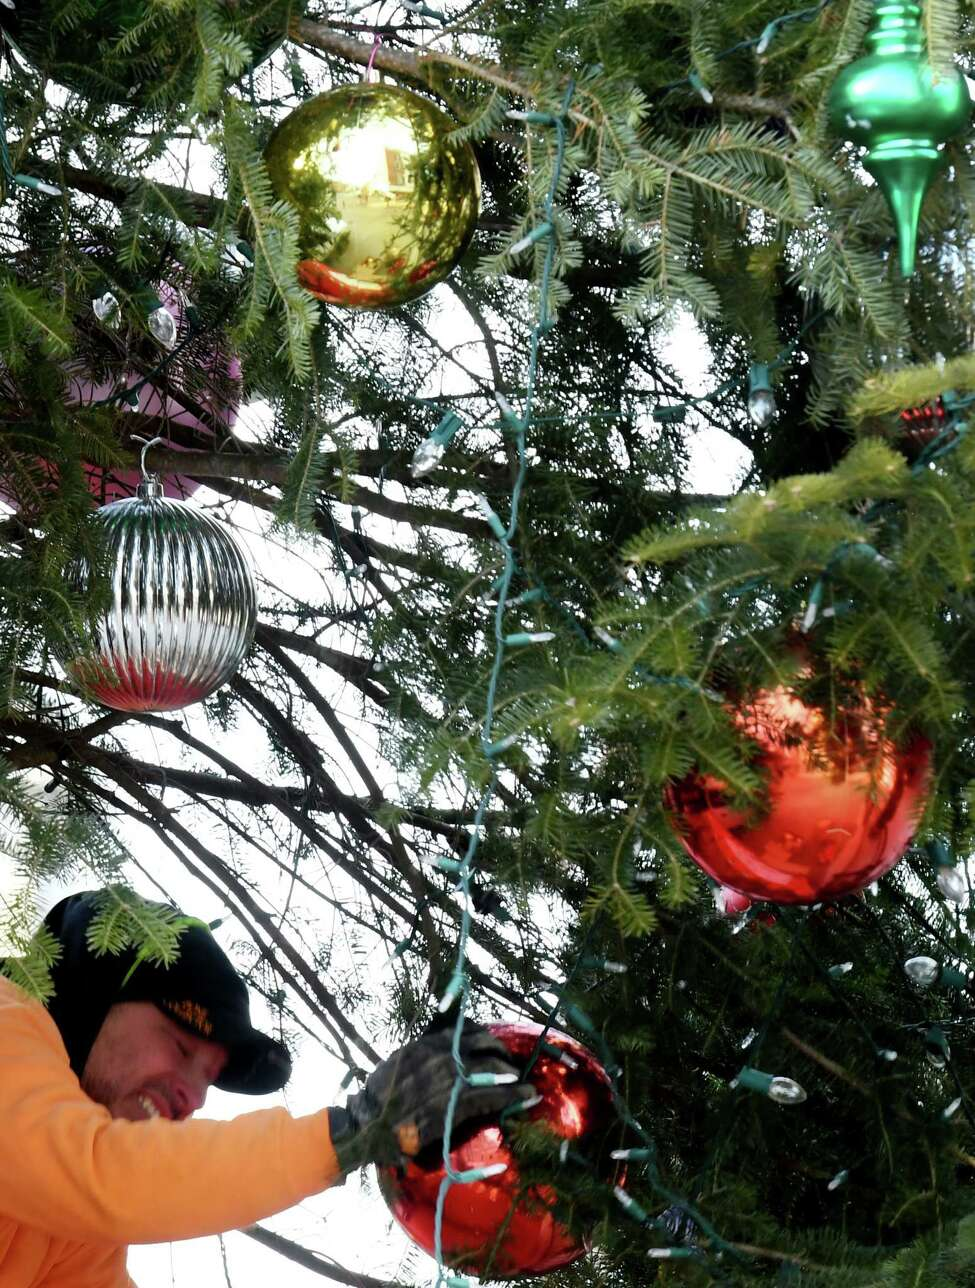 Christmas decorations are taken down by Schenectady city workers on Thursday, Jan. 9, 2020, on State Street in Schenectady, N.Y. (Will Waldron/Times Union)